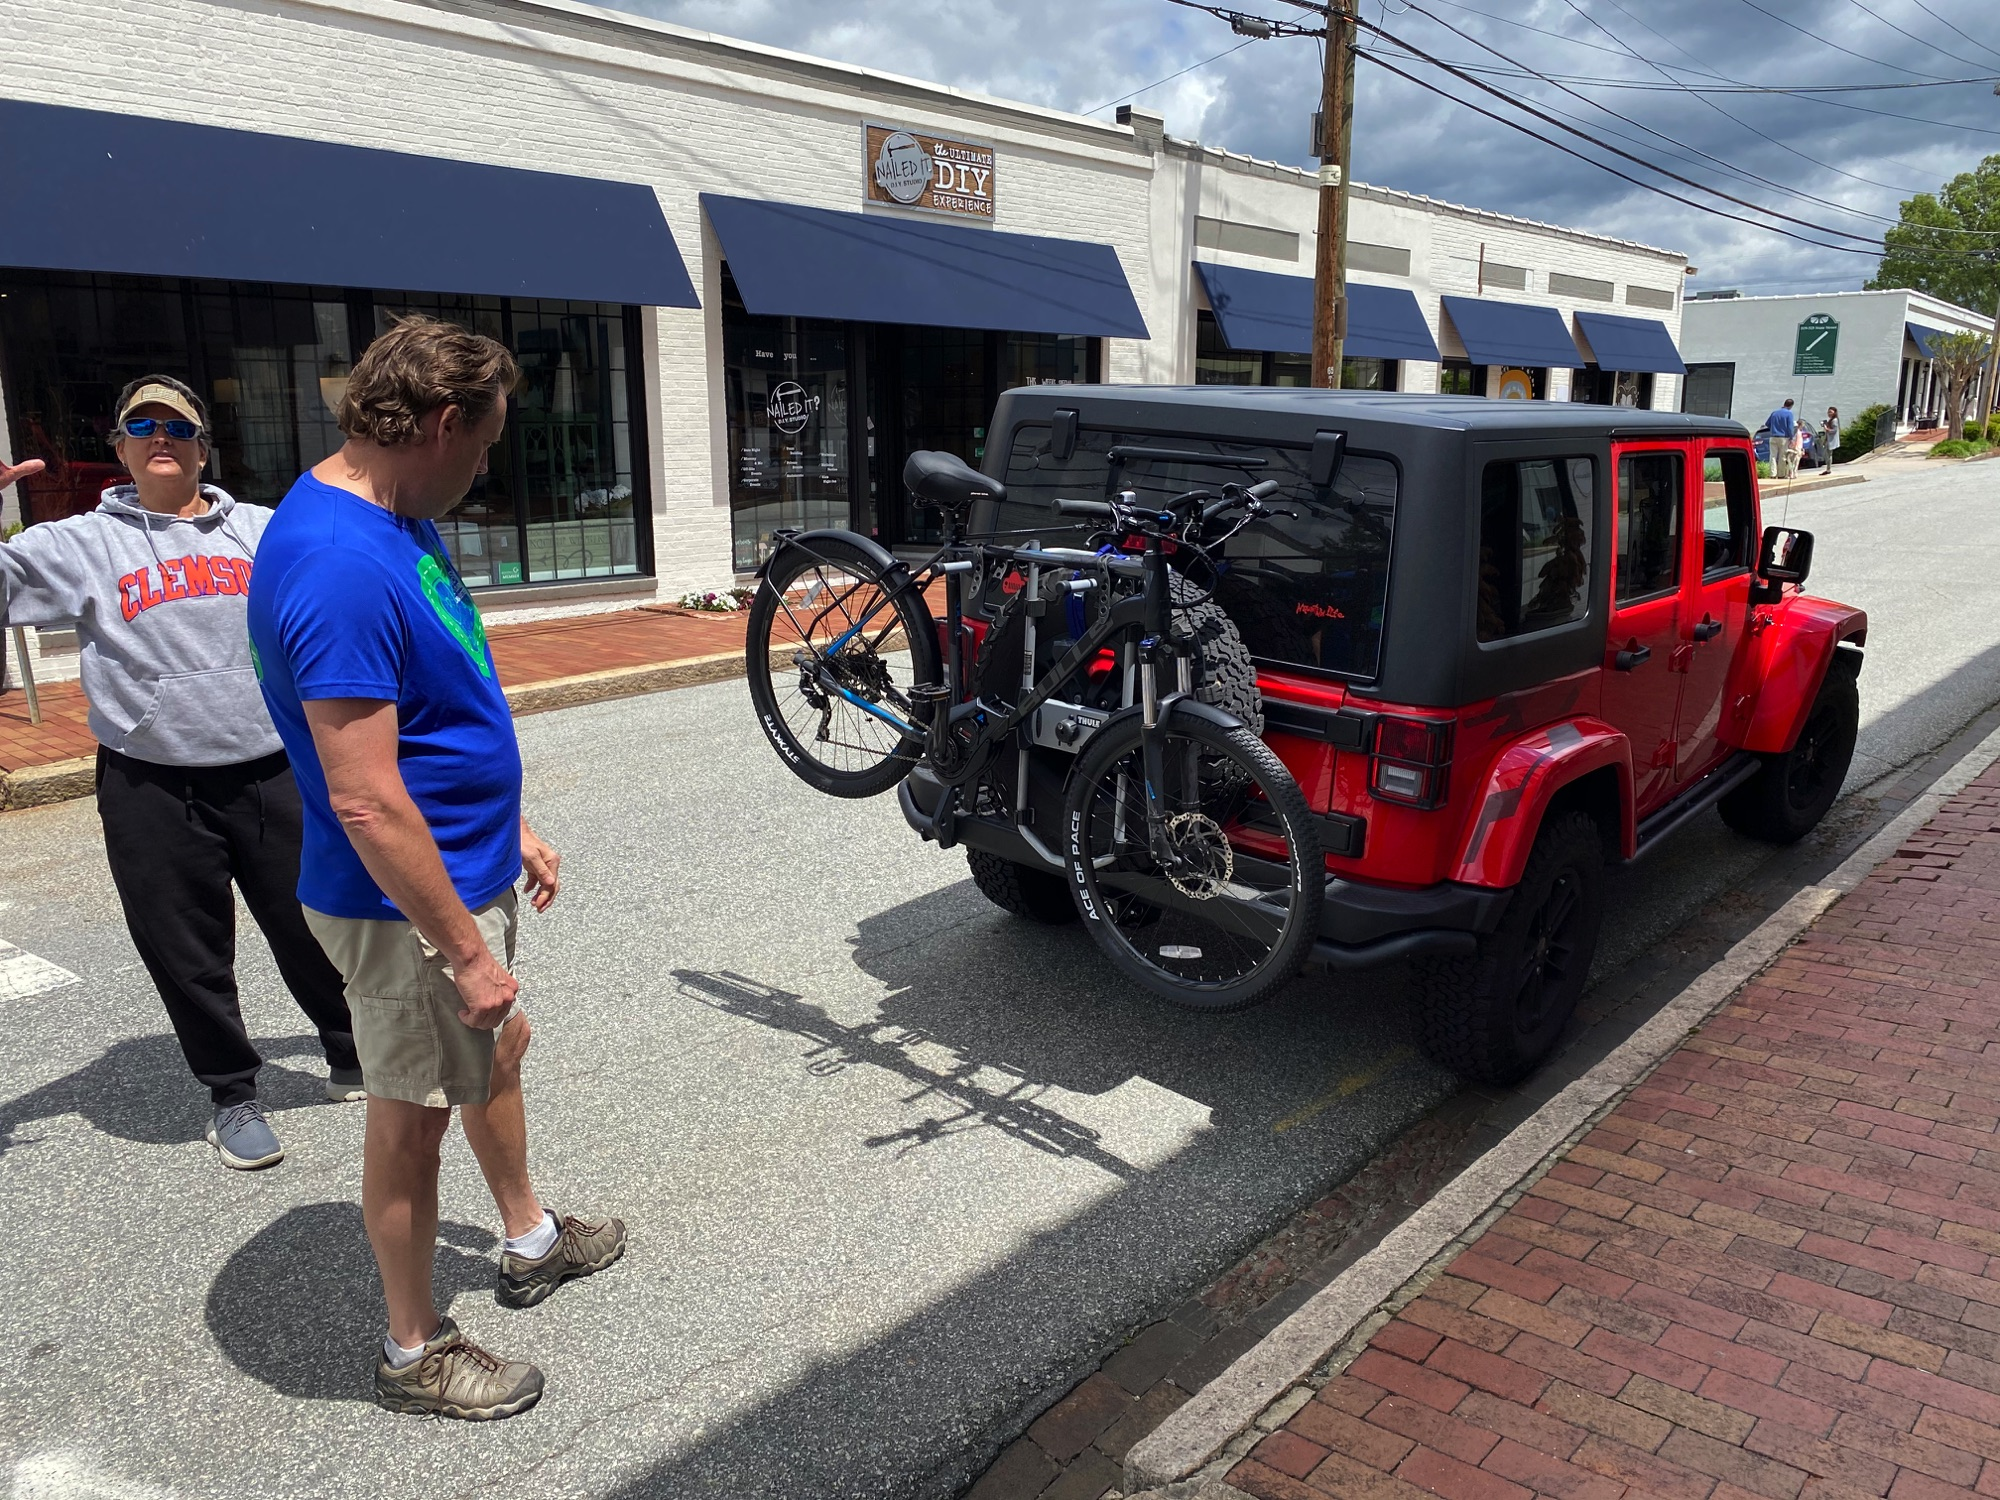 BULLS E 2 Street eBike Delivery in Greensboro NC